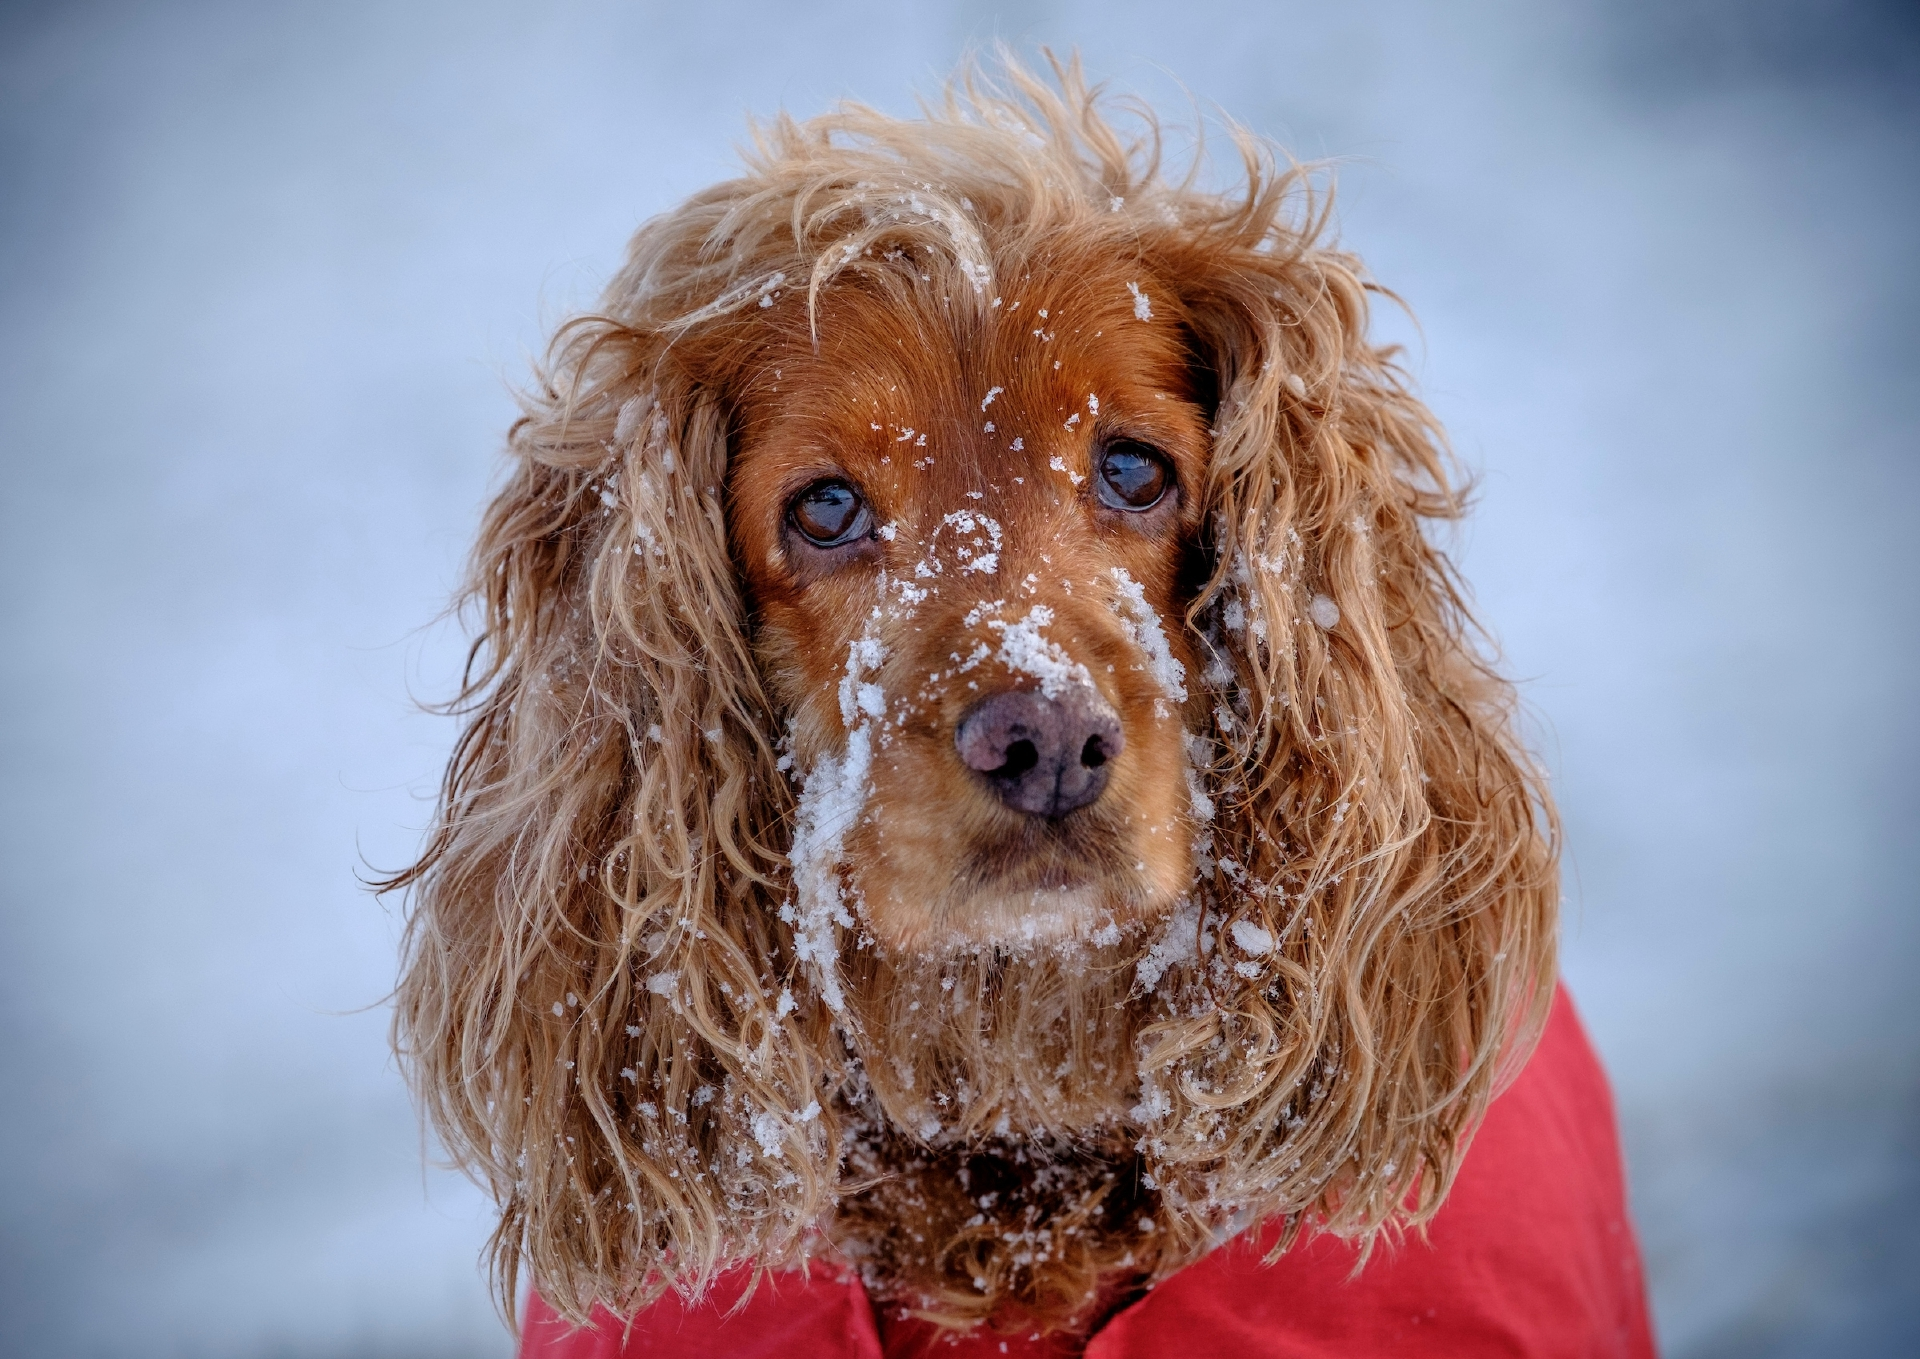 Sophie, an eight year old Cocker Spaniel demonstrates the use of the Ruffwear winter wear for dogs in the Pentland Hills near Edinburgh.